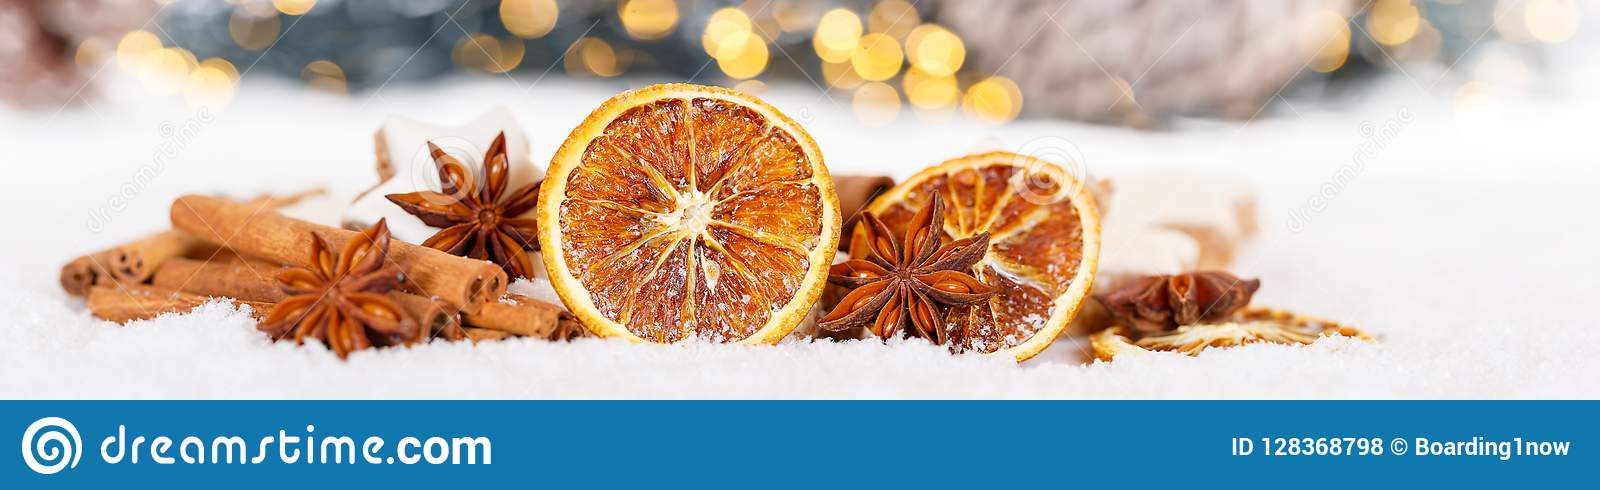 Christmas decoration orange fruit herbs baking bakery banner snow winter